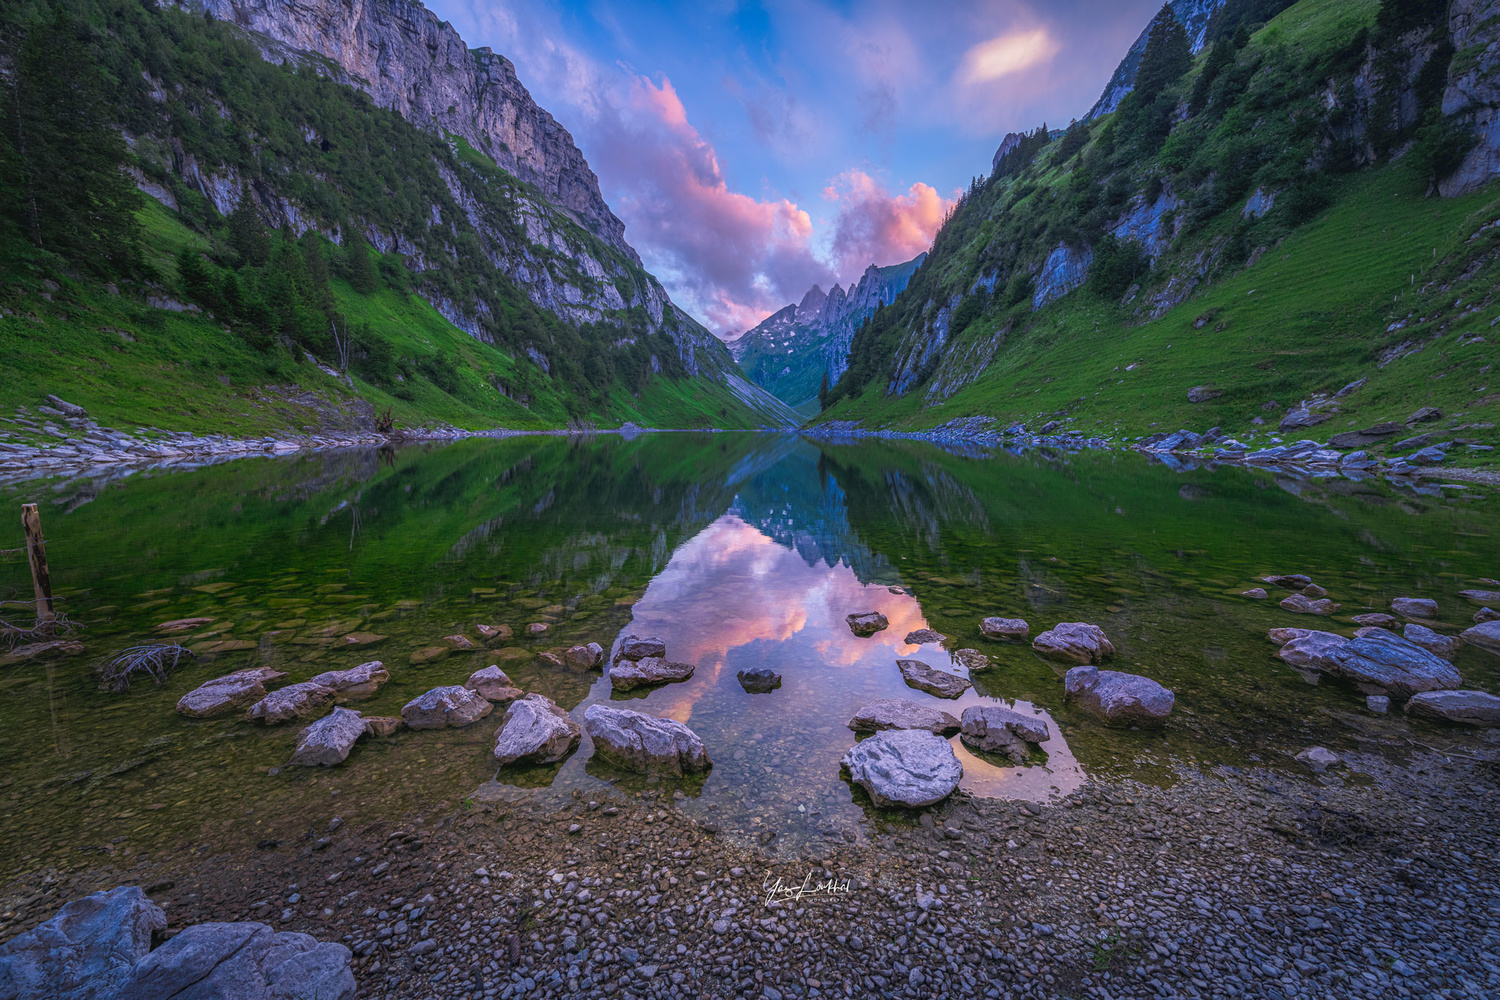 Sunet in Fälensee by Yaz Loukhal